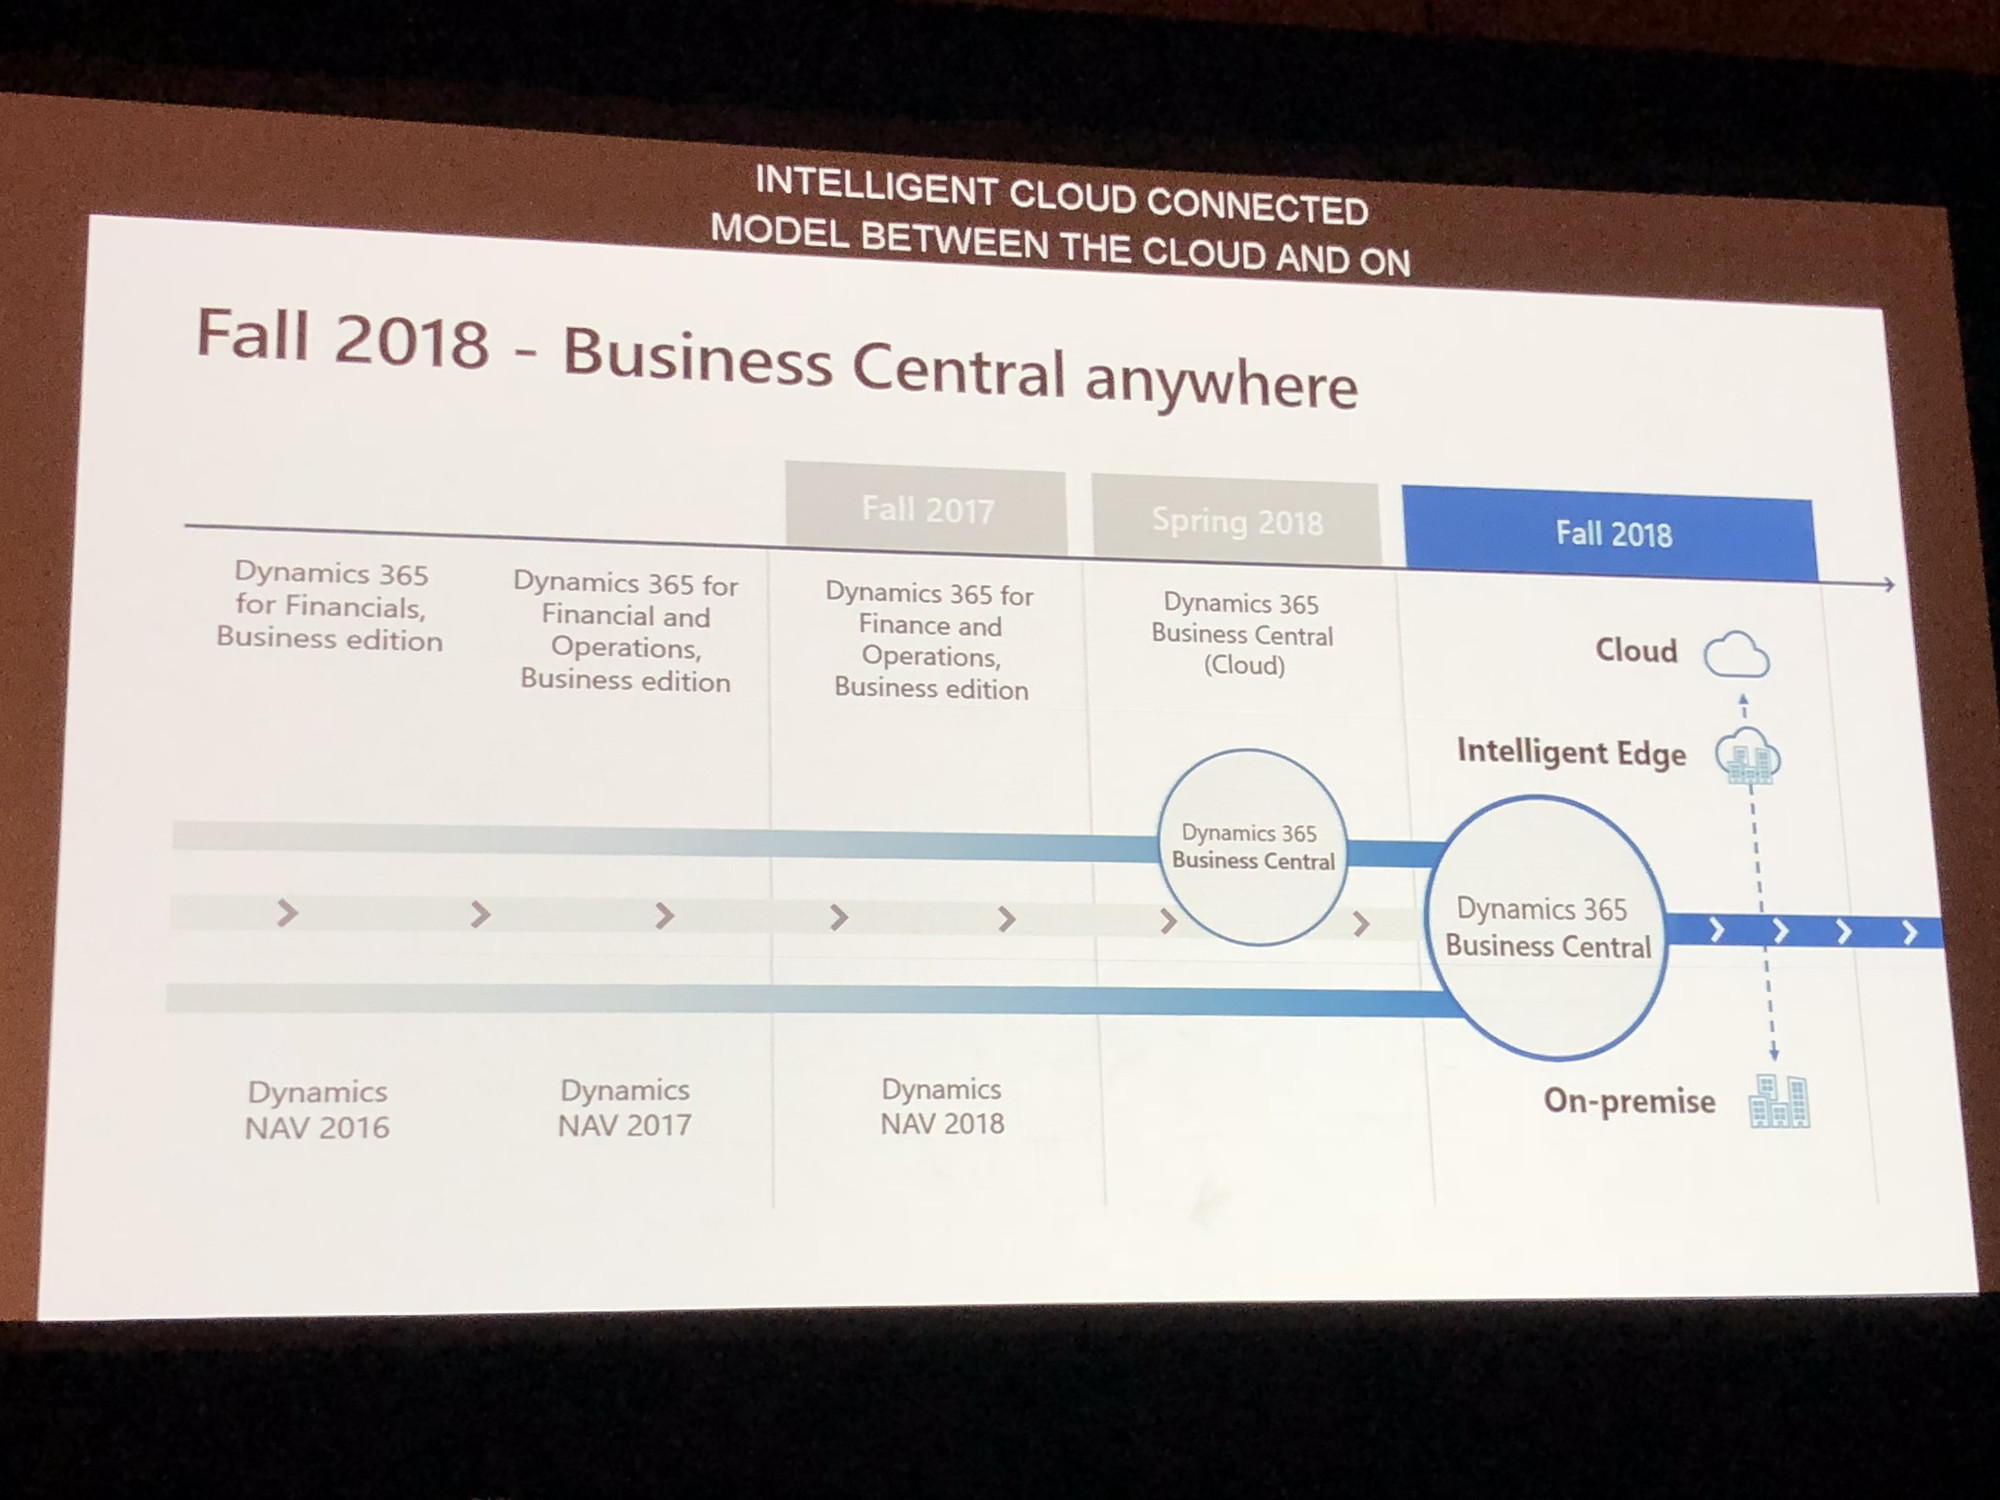 business central fall 2018 cloud